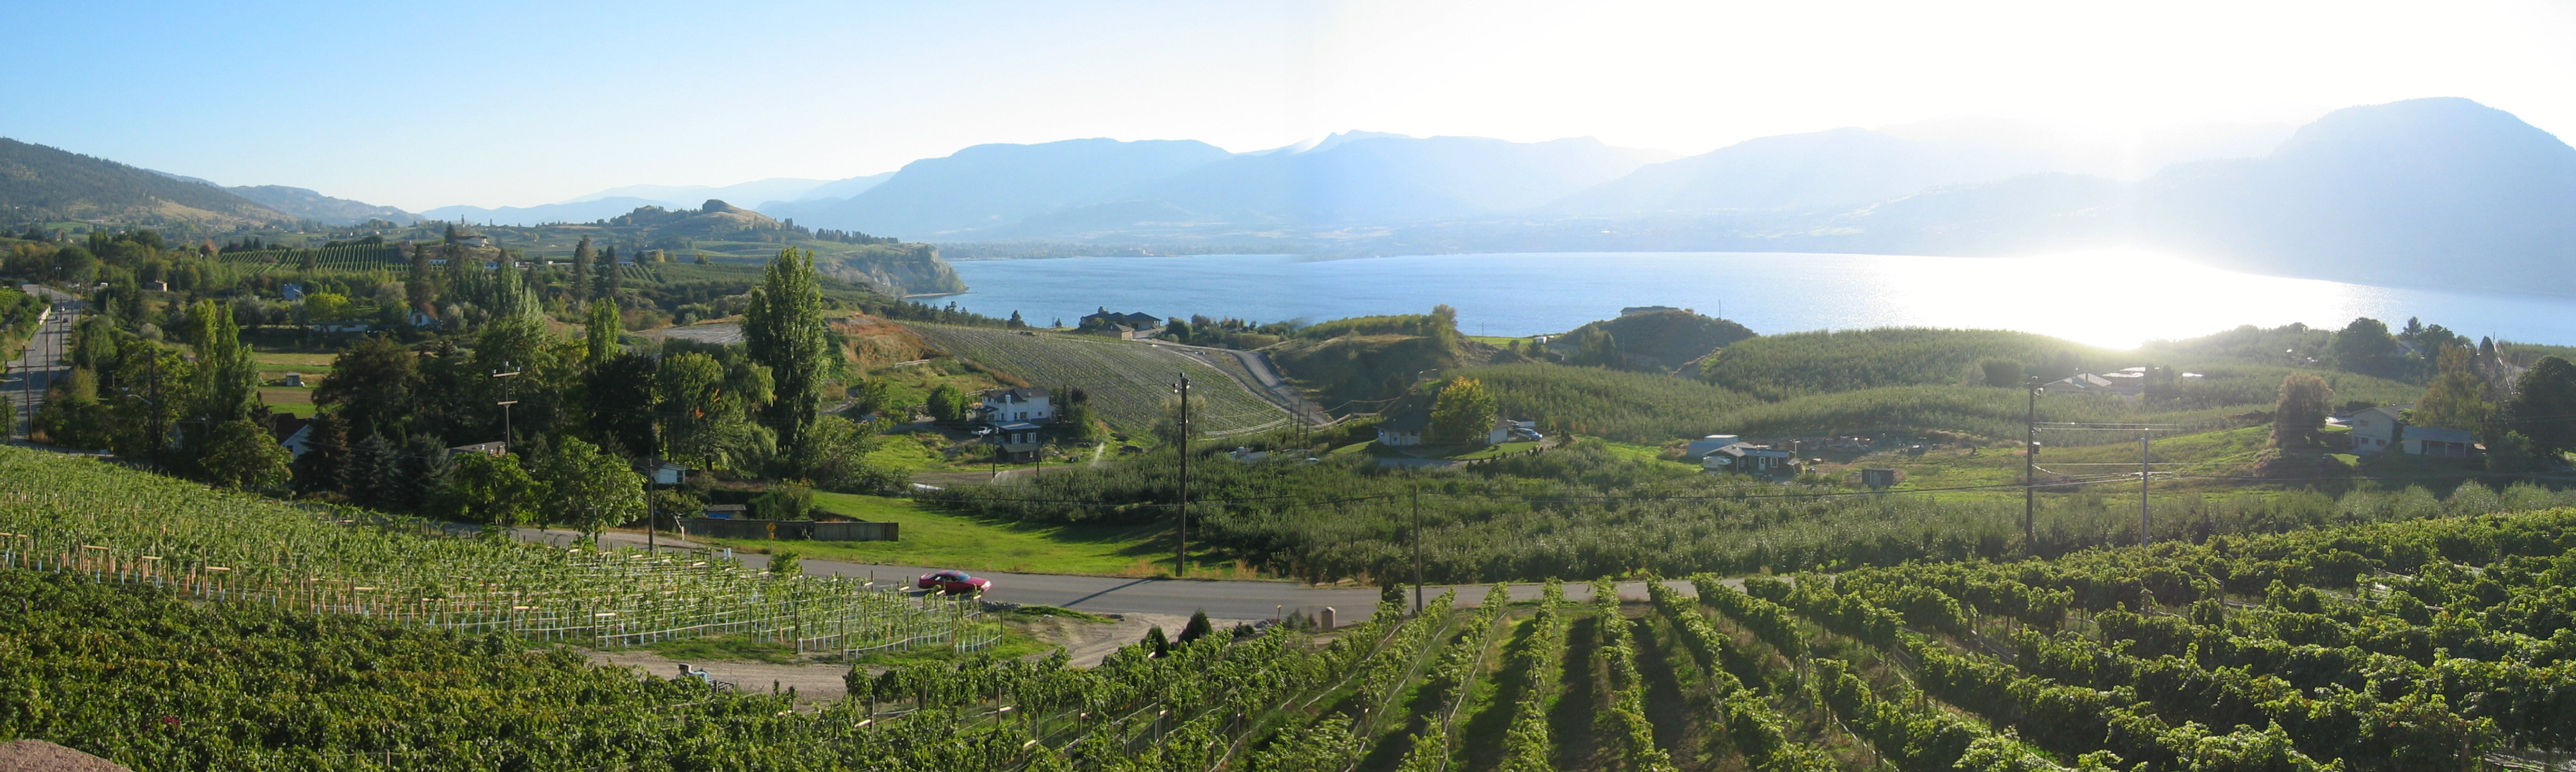 Arterra Wines Canada Buys Laughing Stock Vineyards photo